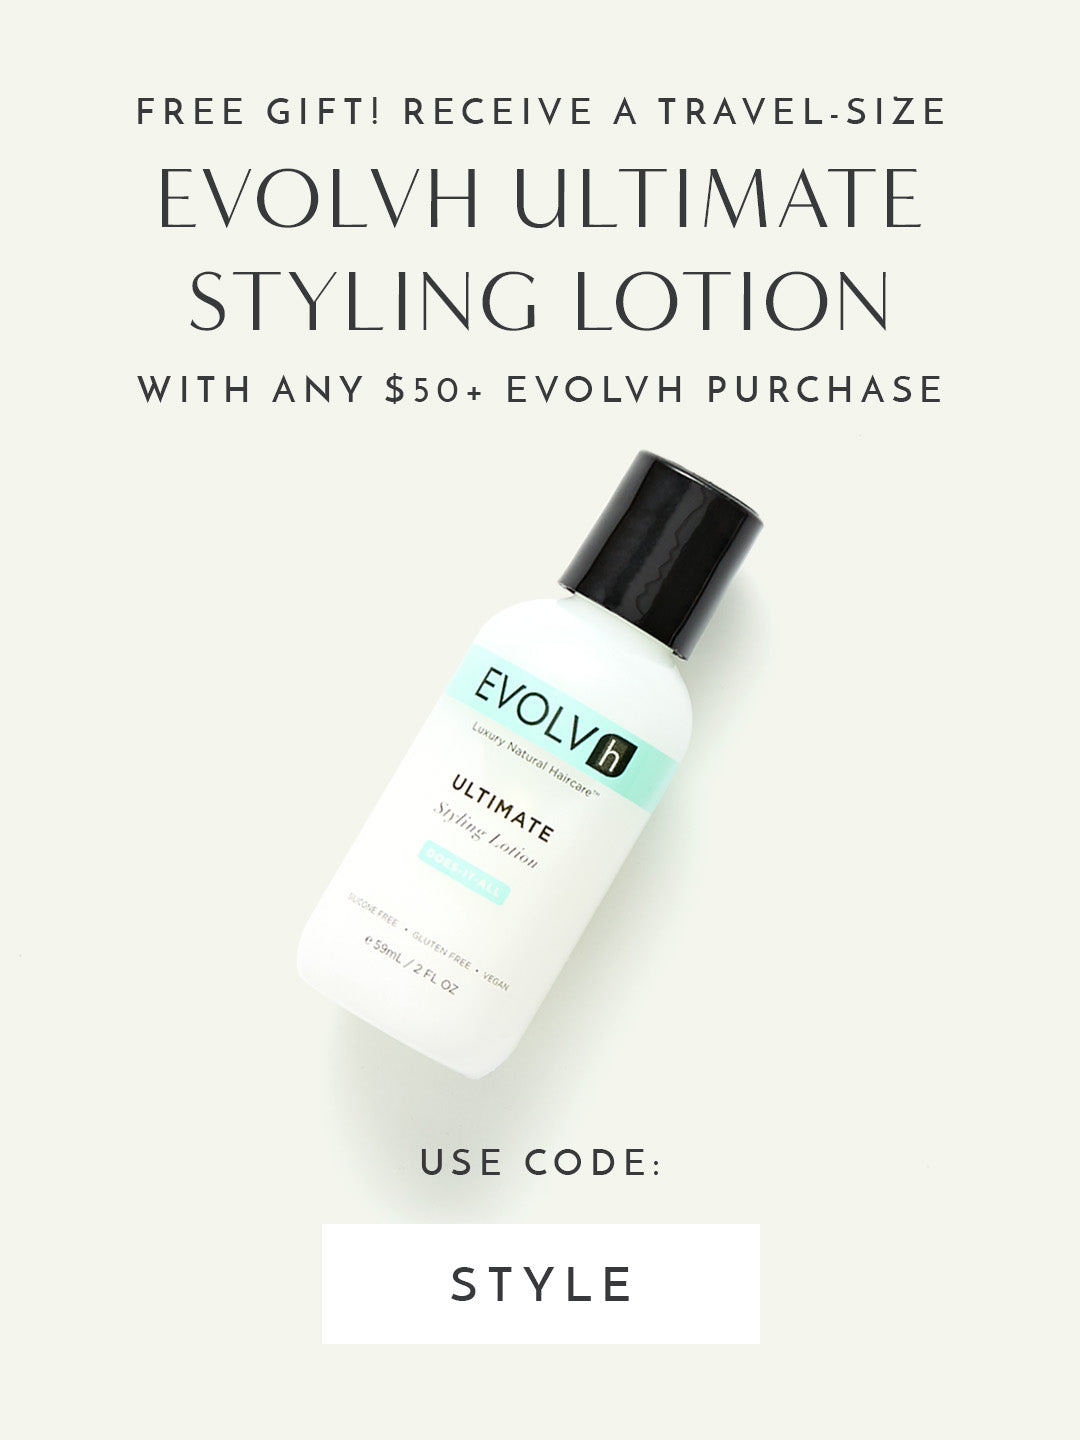 FREE Travel-Size Ultimate Styling Lotion with any $50+ Evolvh purchase. Use code: STYLE